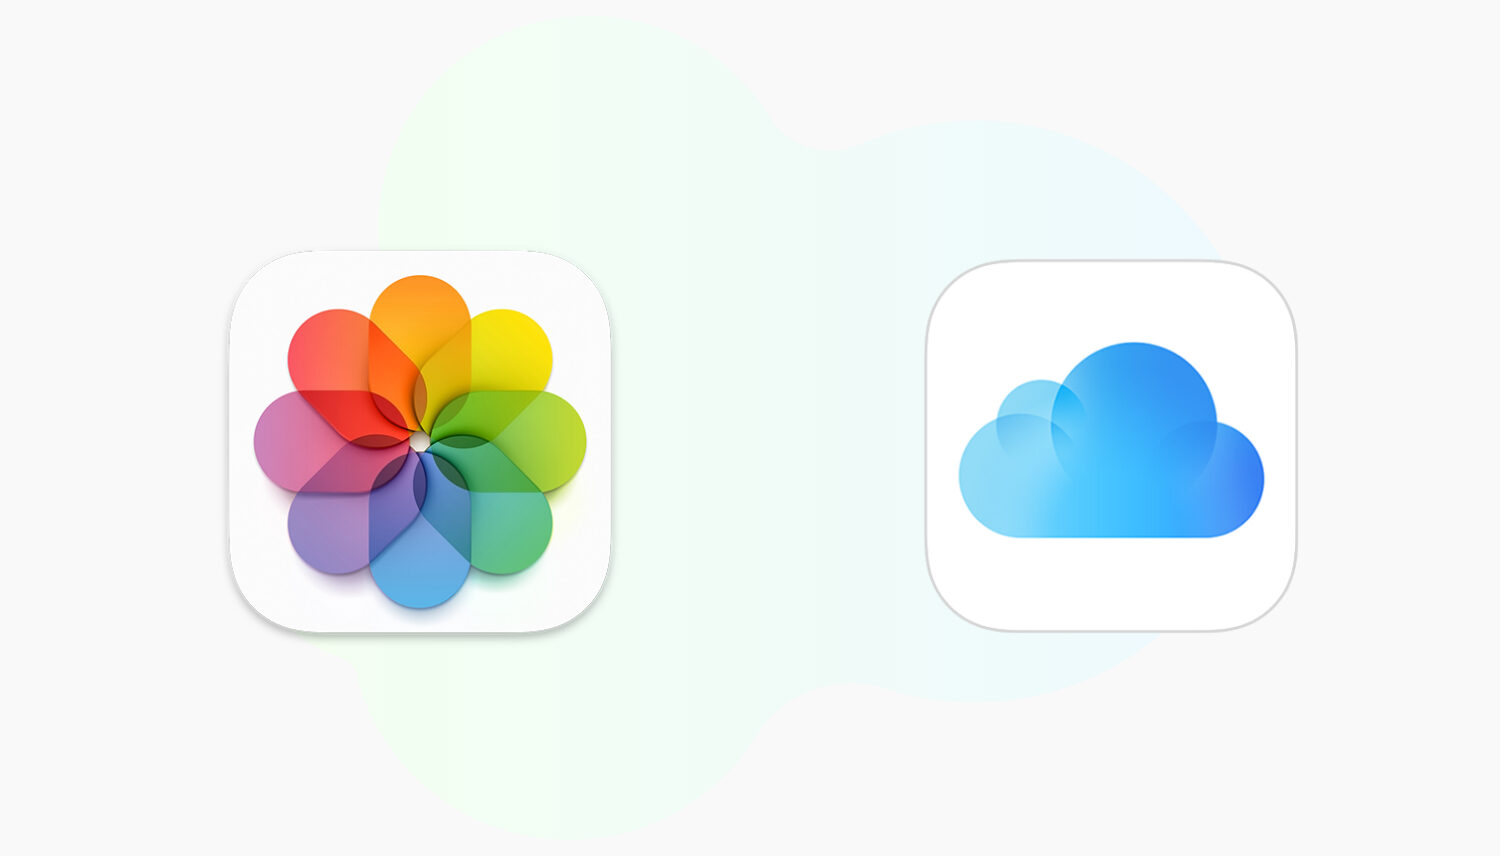 How to access photos on iCloud